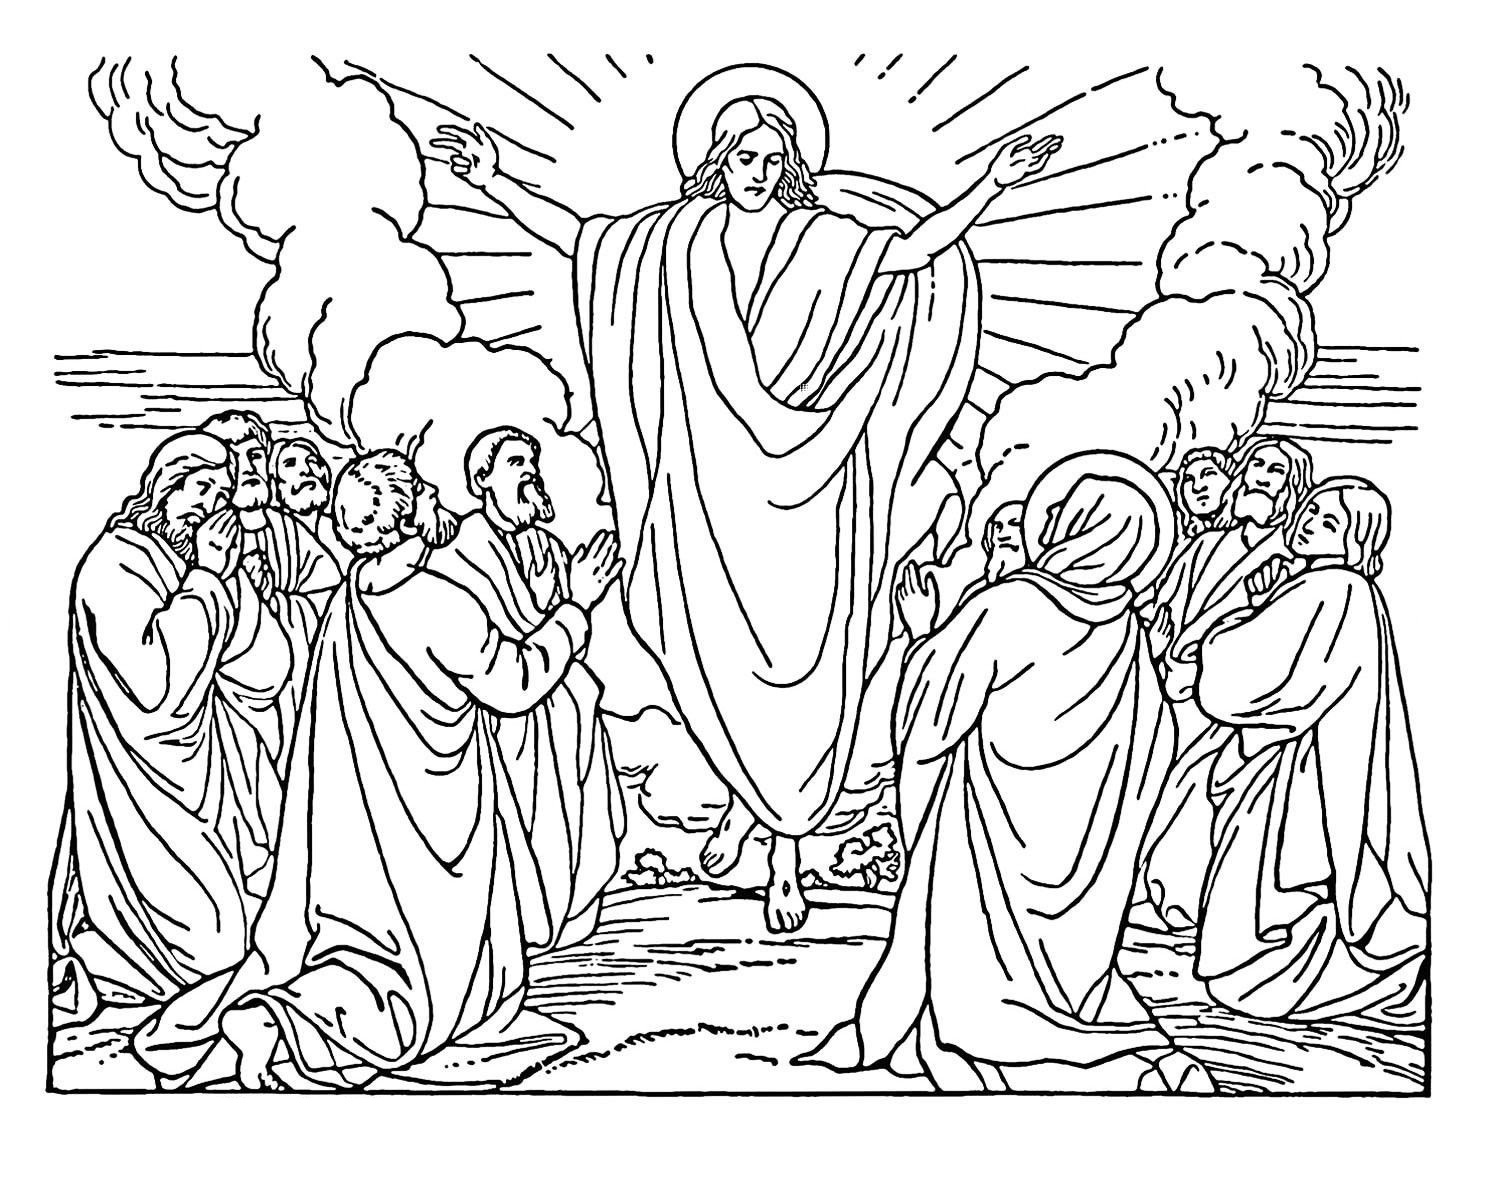 bible coloring pages bible story coloring pages rocky mount preschool kids church bible pages coloring